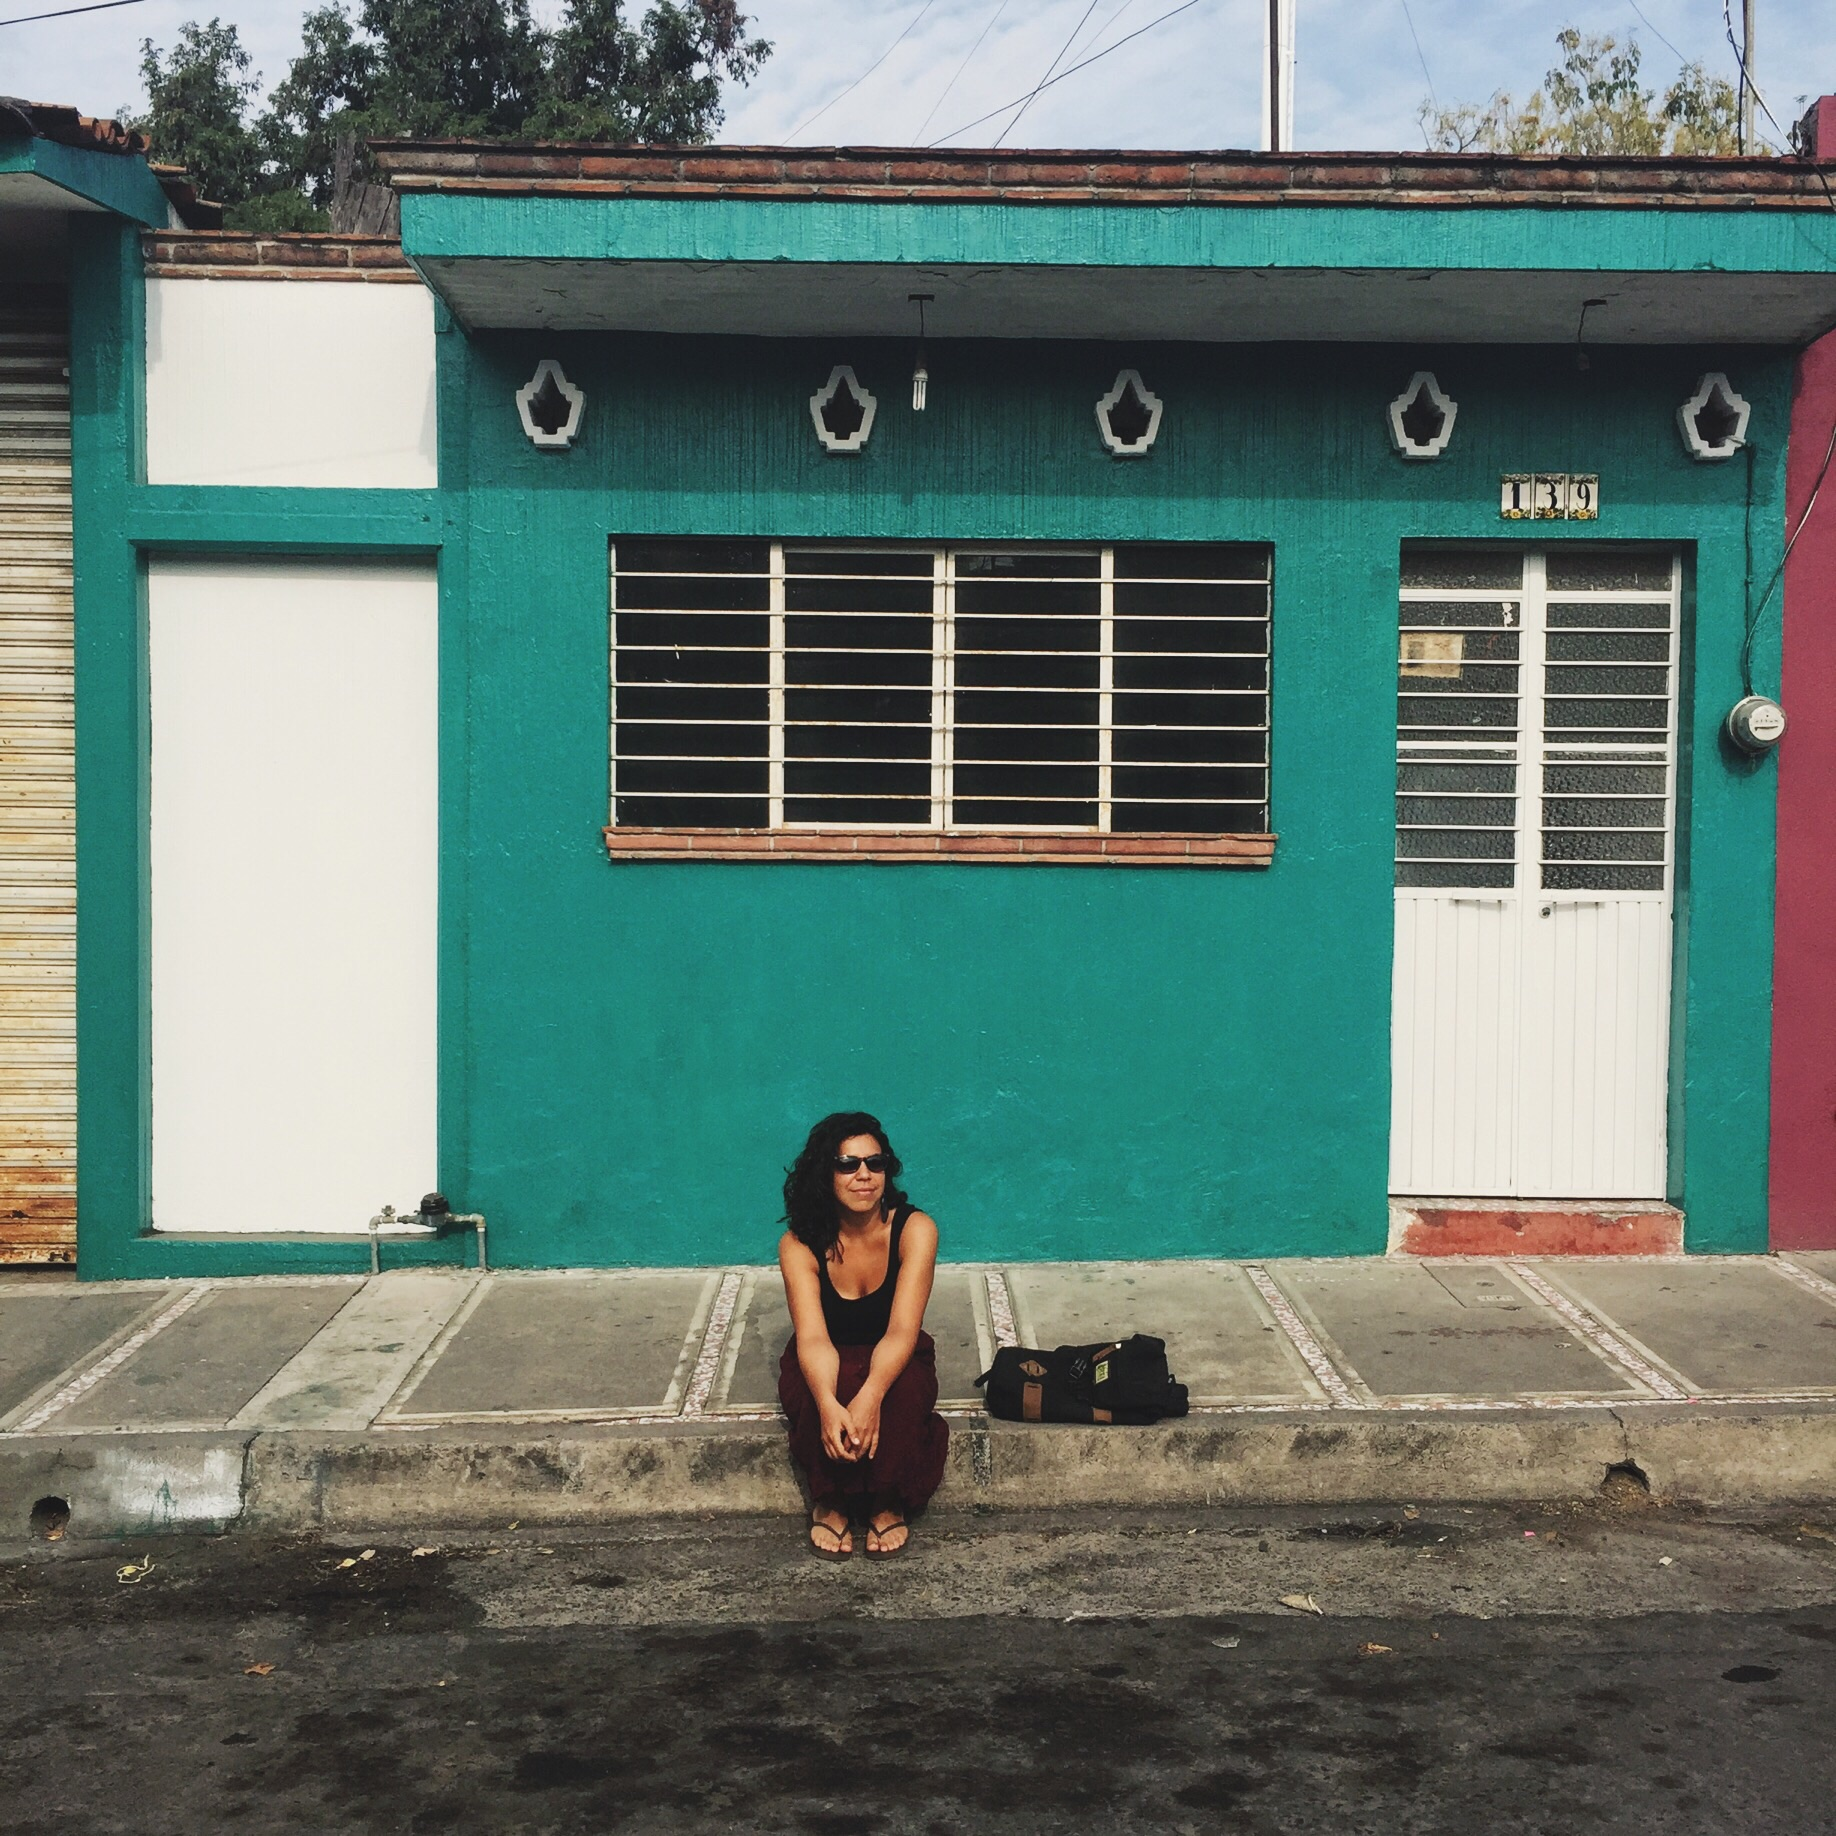 Waiting for some fresh coco's on the colorful streets